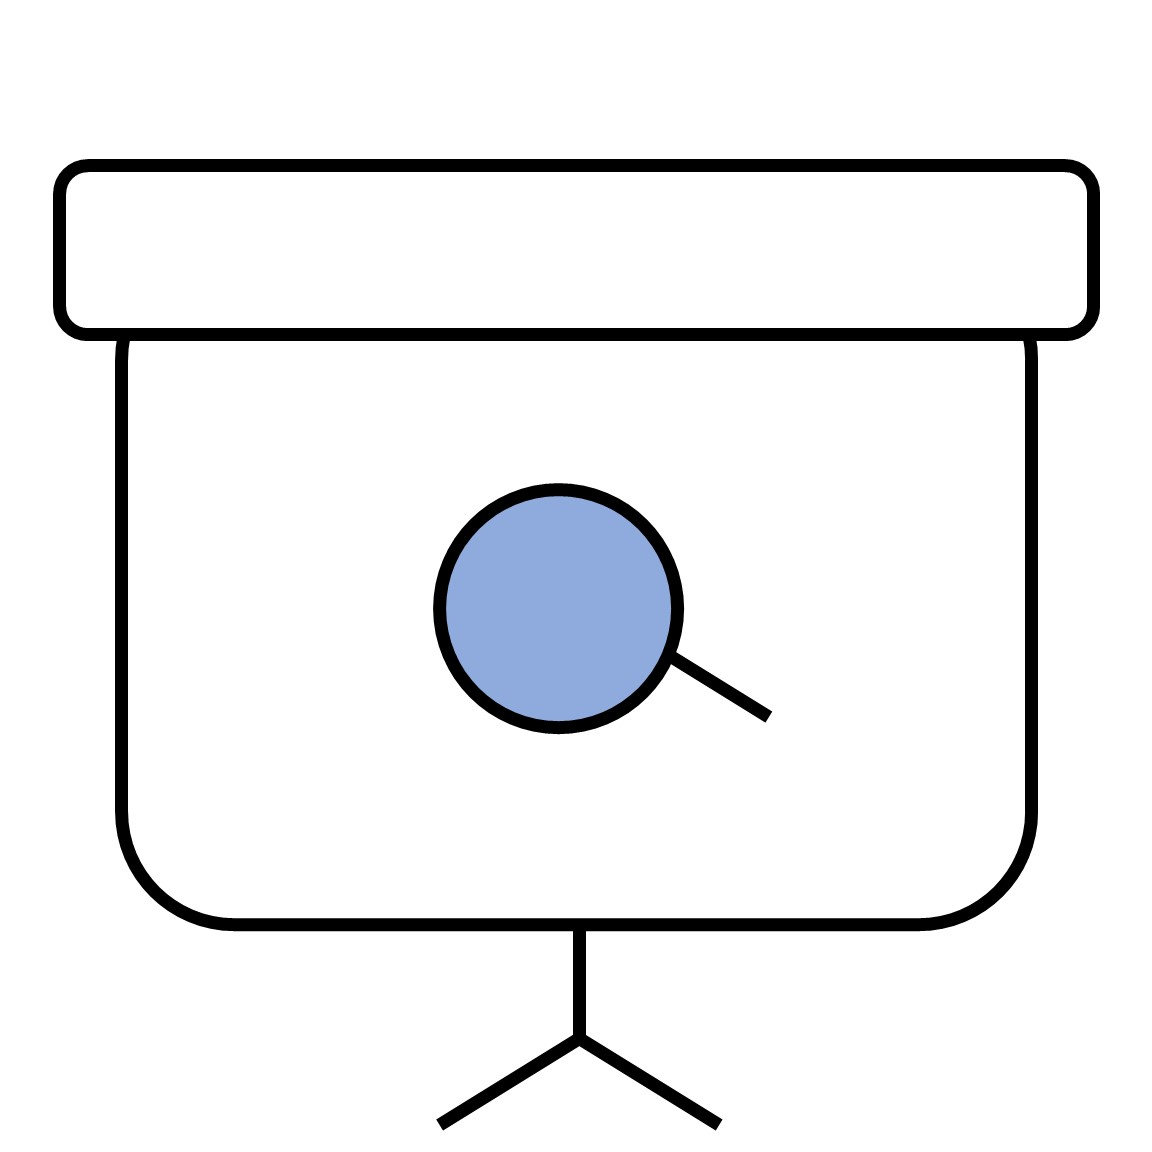 Projector icon with magnifying glass